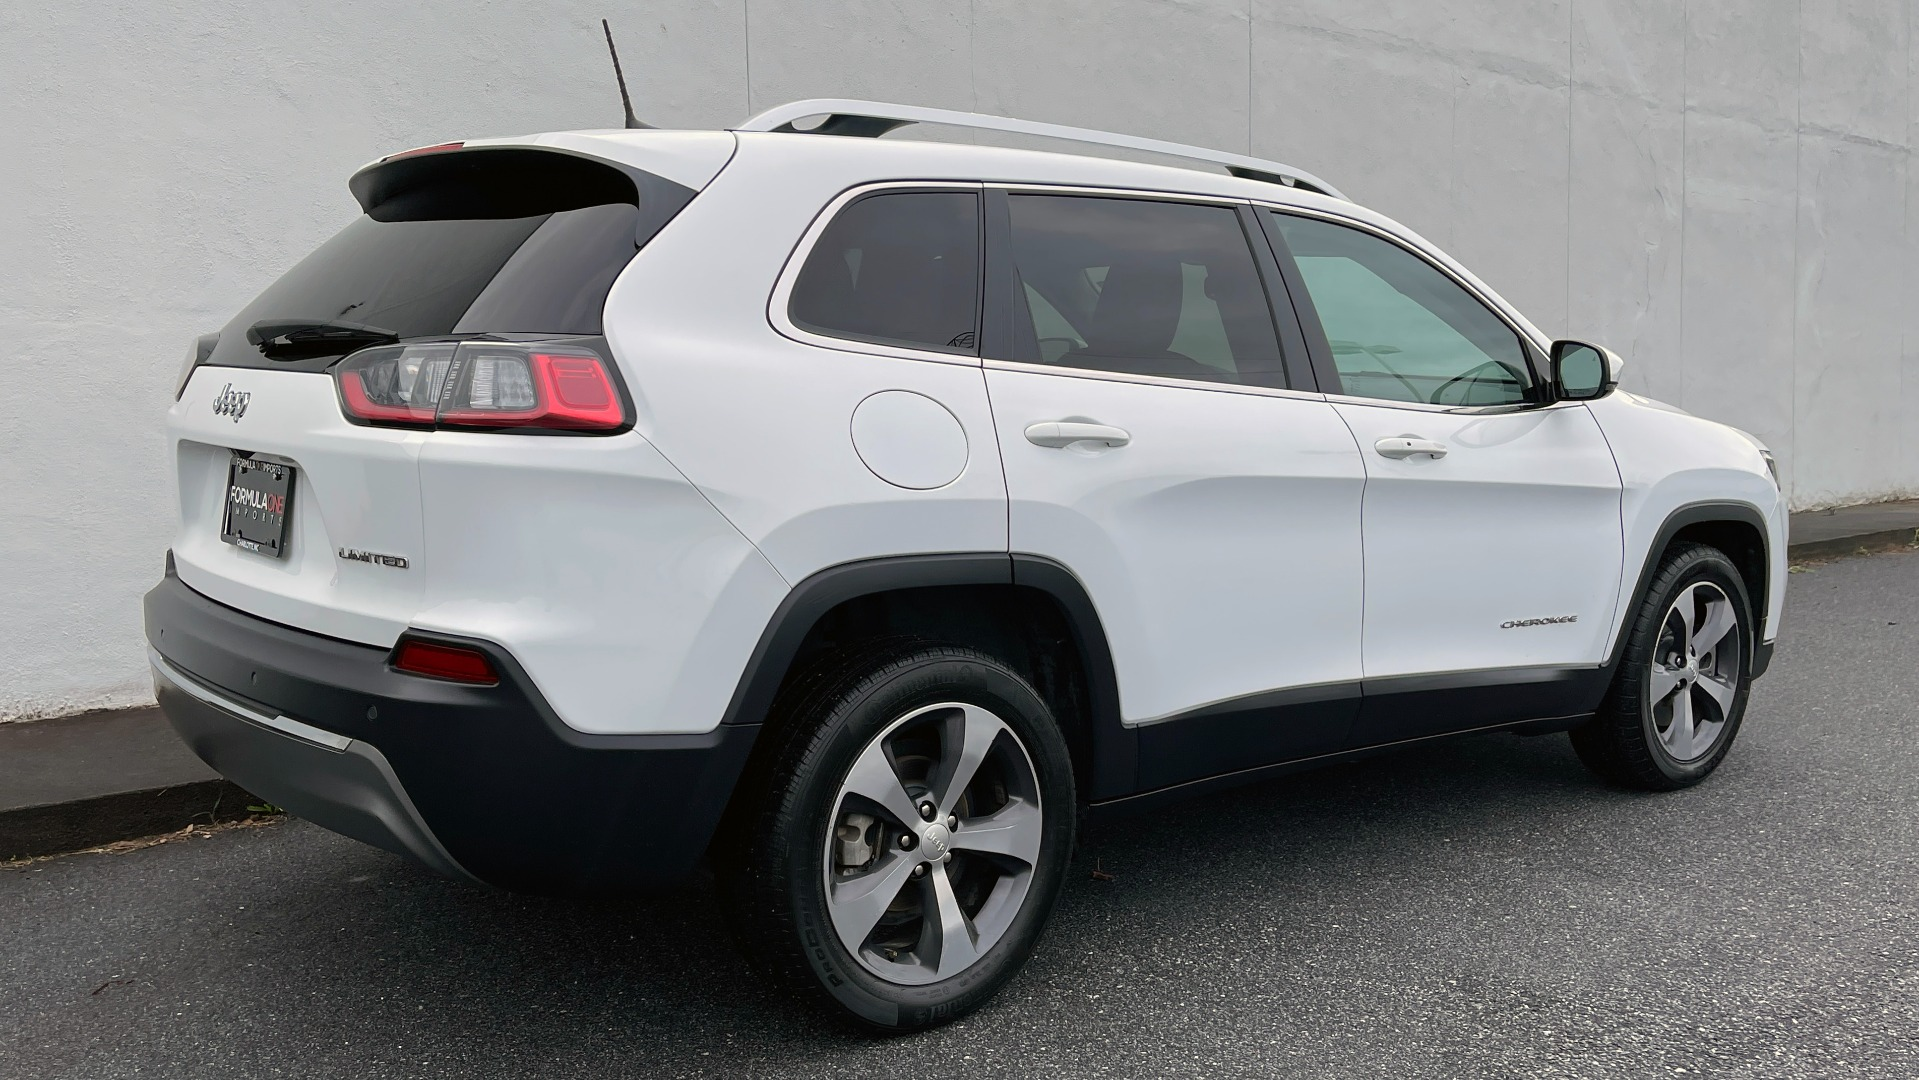 Used 2019 Jeep CHEROKEE LIMITED 2.4L / FWD / APPLE CARPLAY / KEYLESS-GO / REARVIEW for sale $24,395 at Formula Imports in Charlotte NC 28227 6